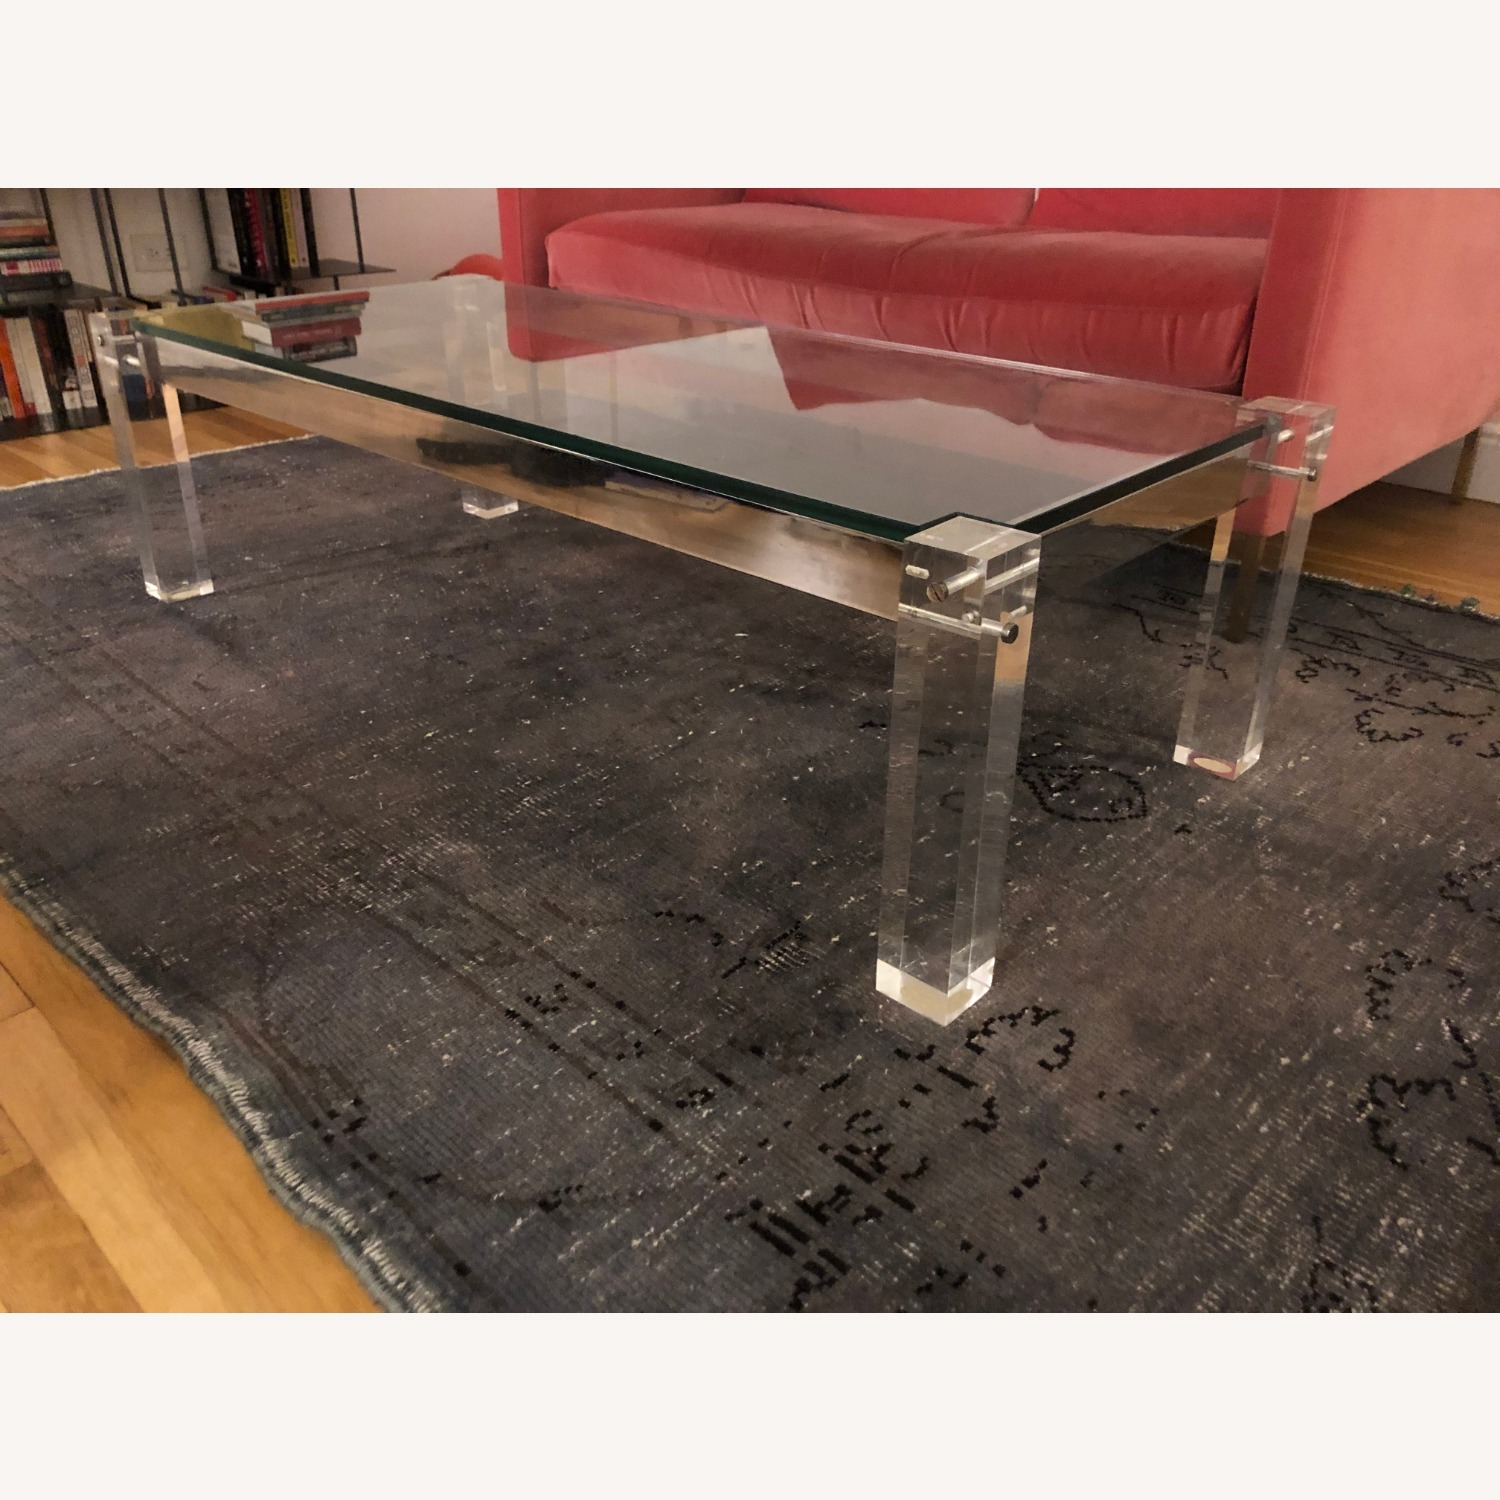 Vintage Glass Top and Lucite Legs Coffee Table - image-1